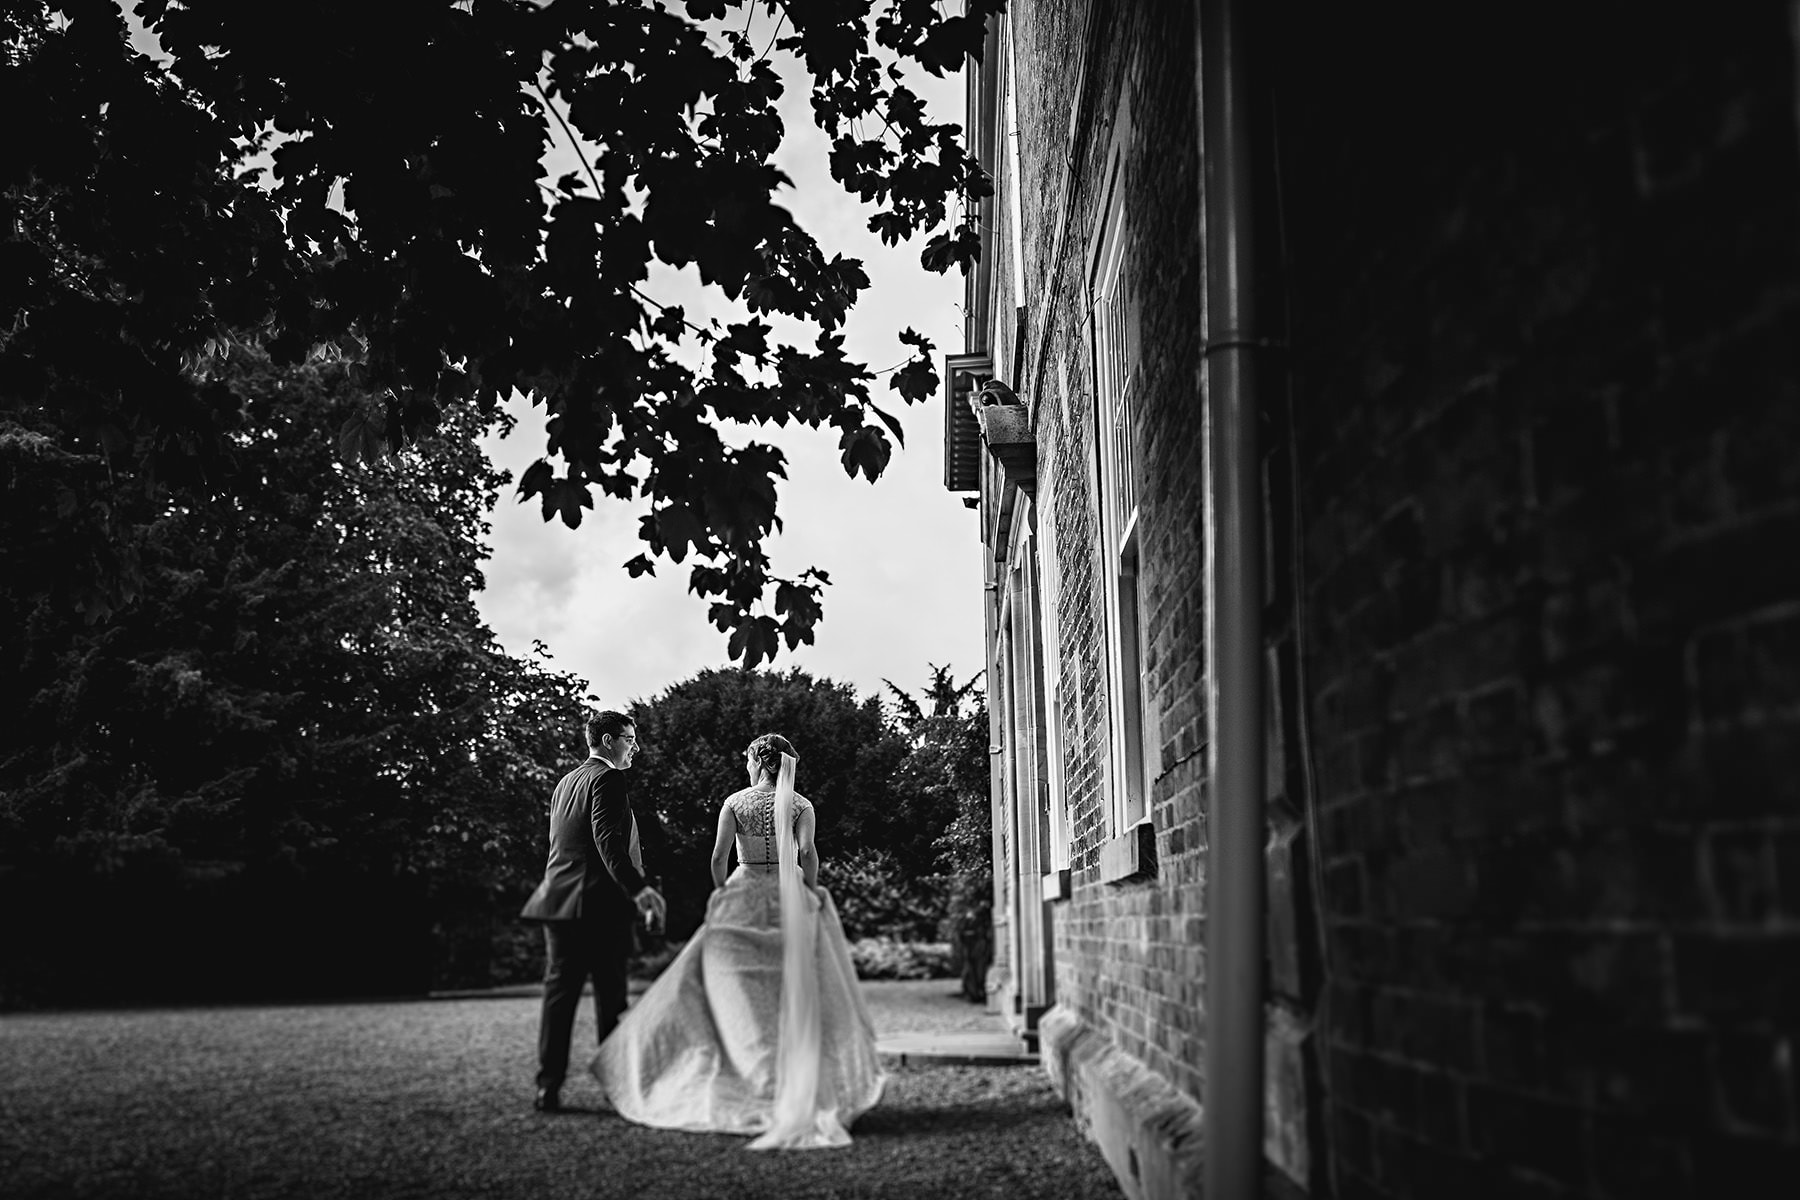 the bride and groom in black and white walking at the wedding venue